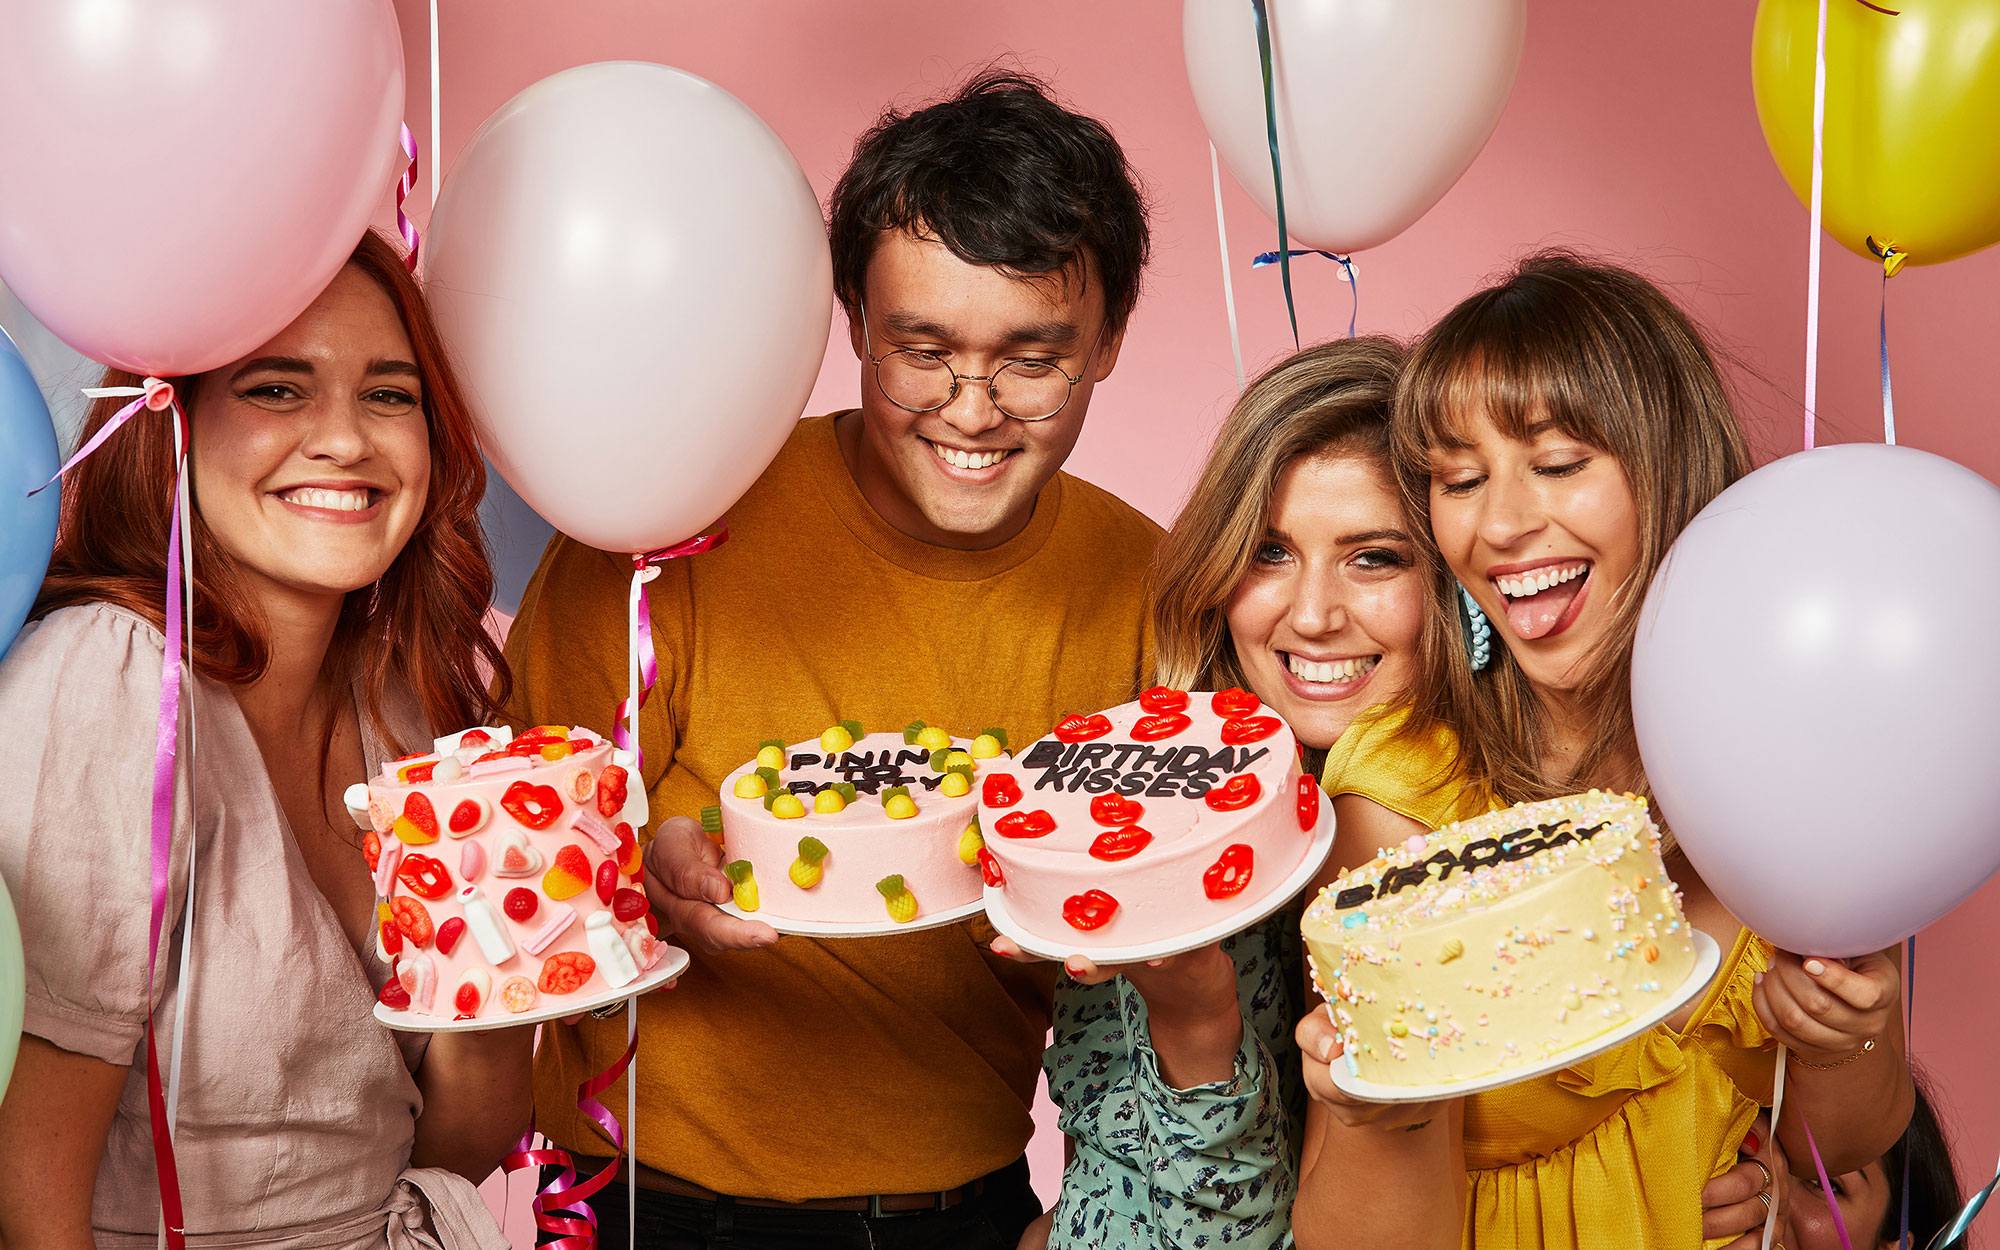 A photo showing three women and a man, surrounded by balloons and colourful cakes. Everyone is happy!